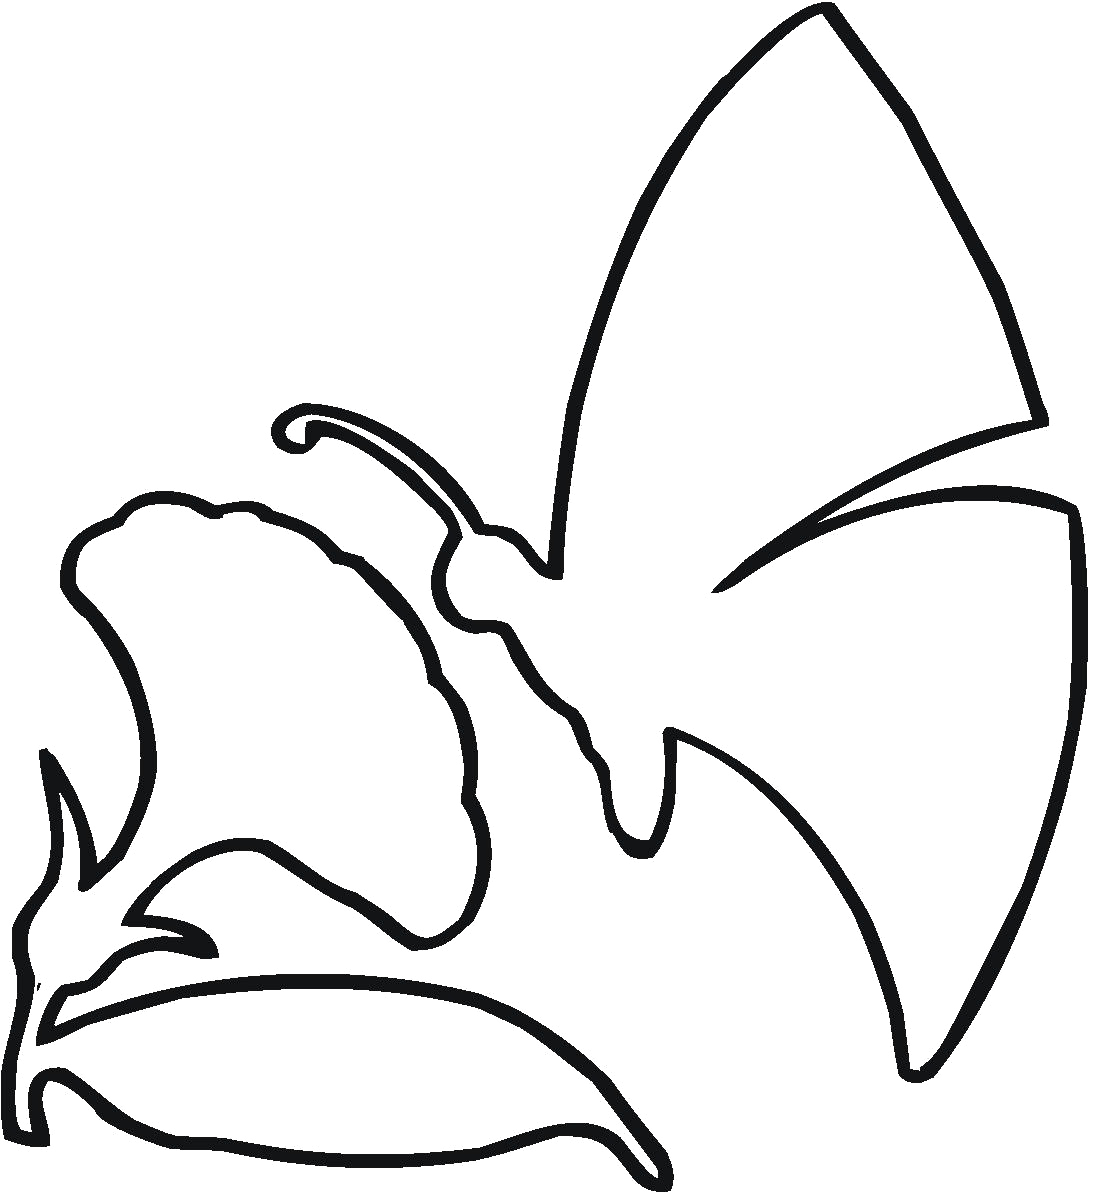 Butterfly Outline Clipart | Free download best Butterfly Outline ...